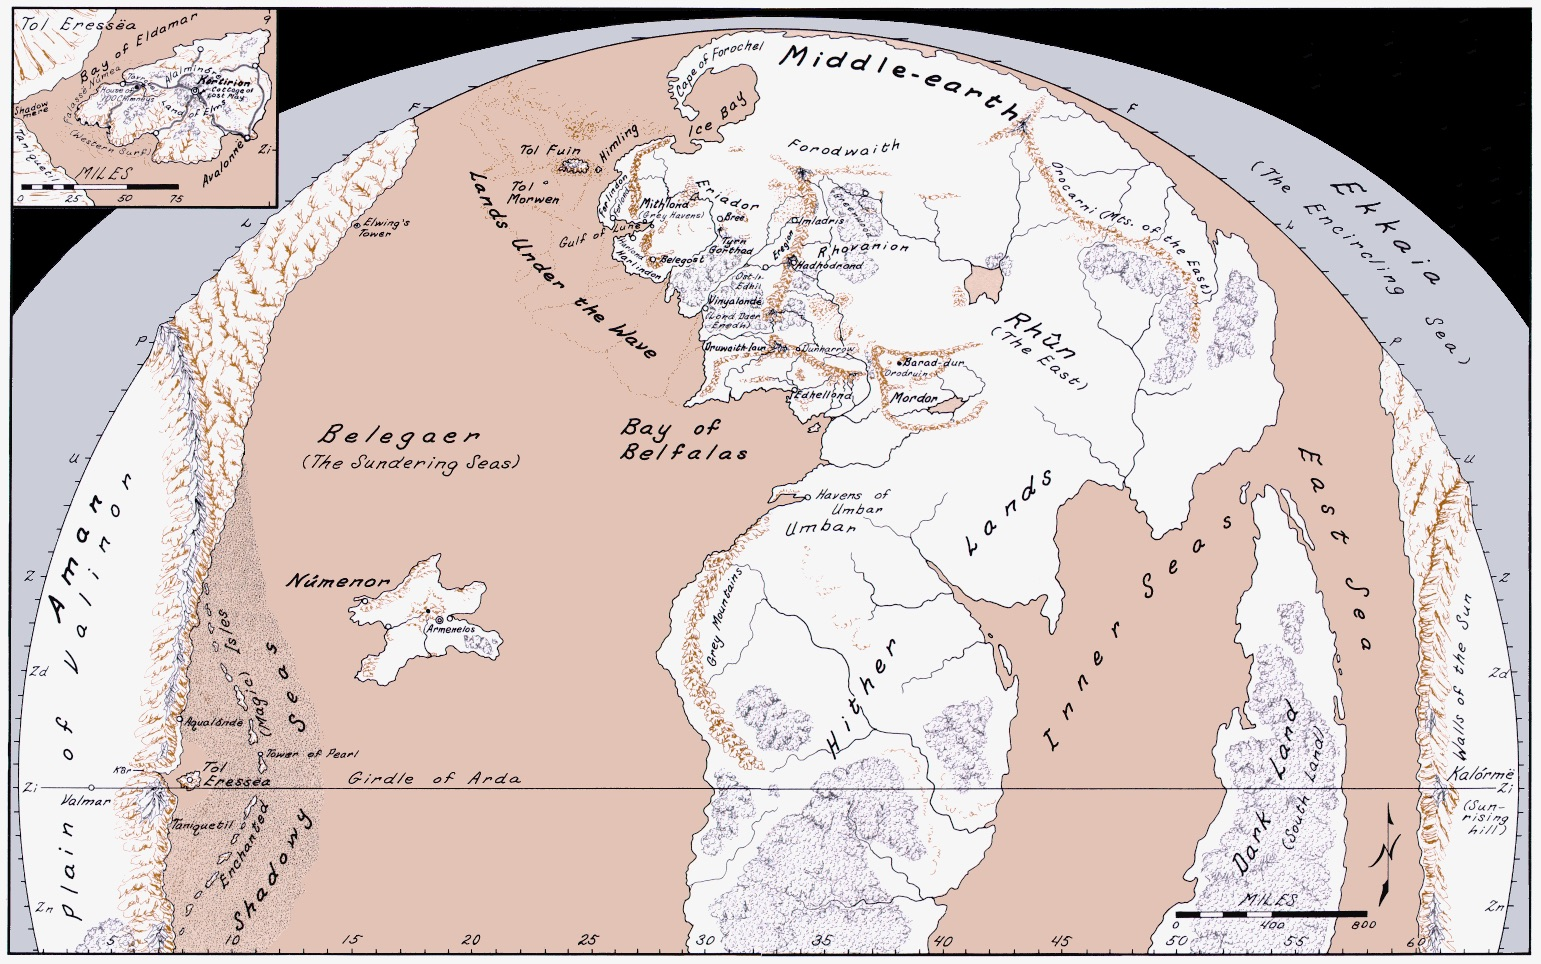 here is karen wynn fontstadts map of arda in the second age including nmenor but not beleriand